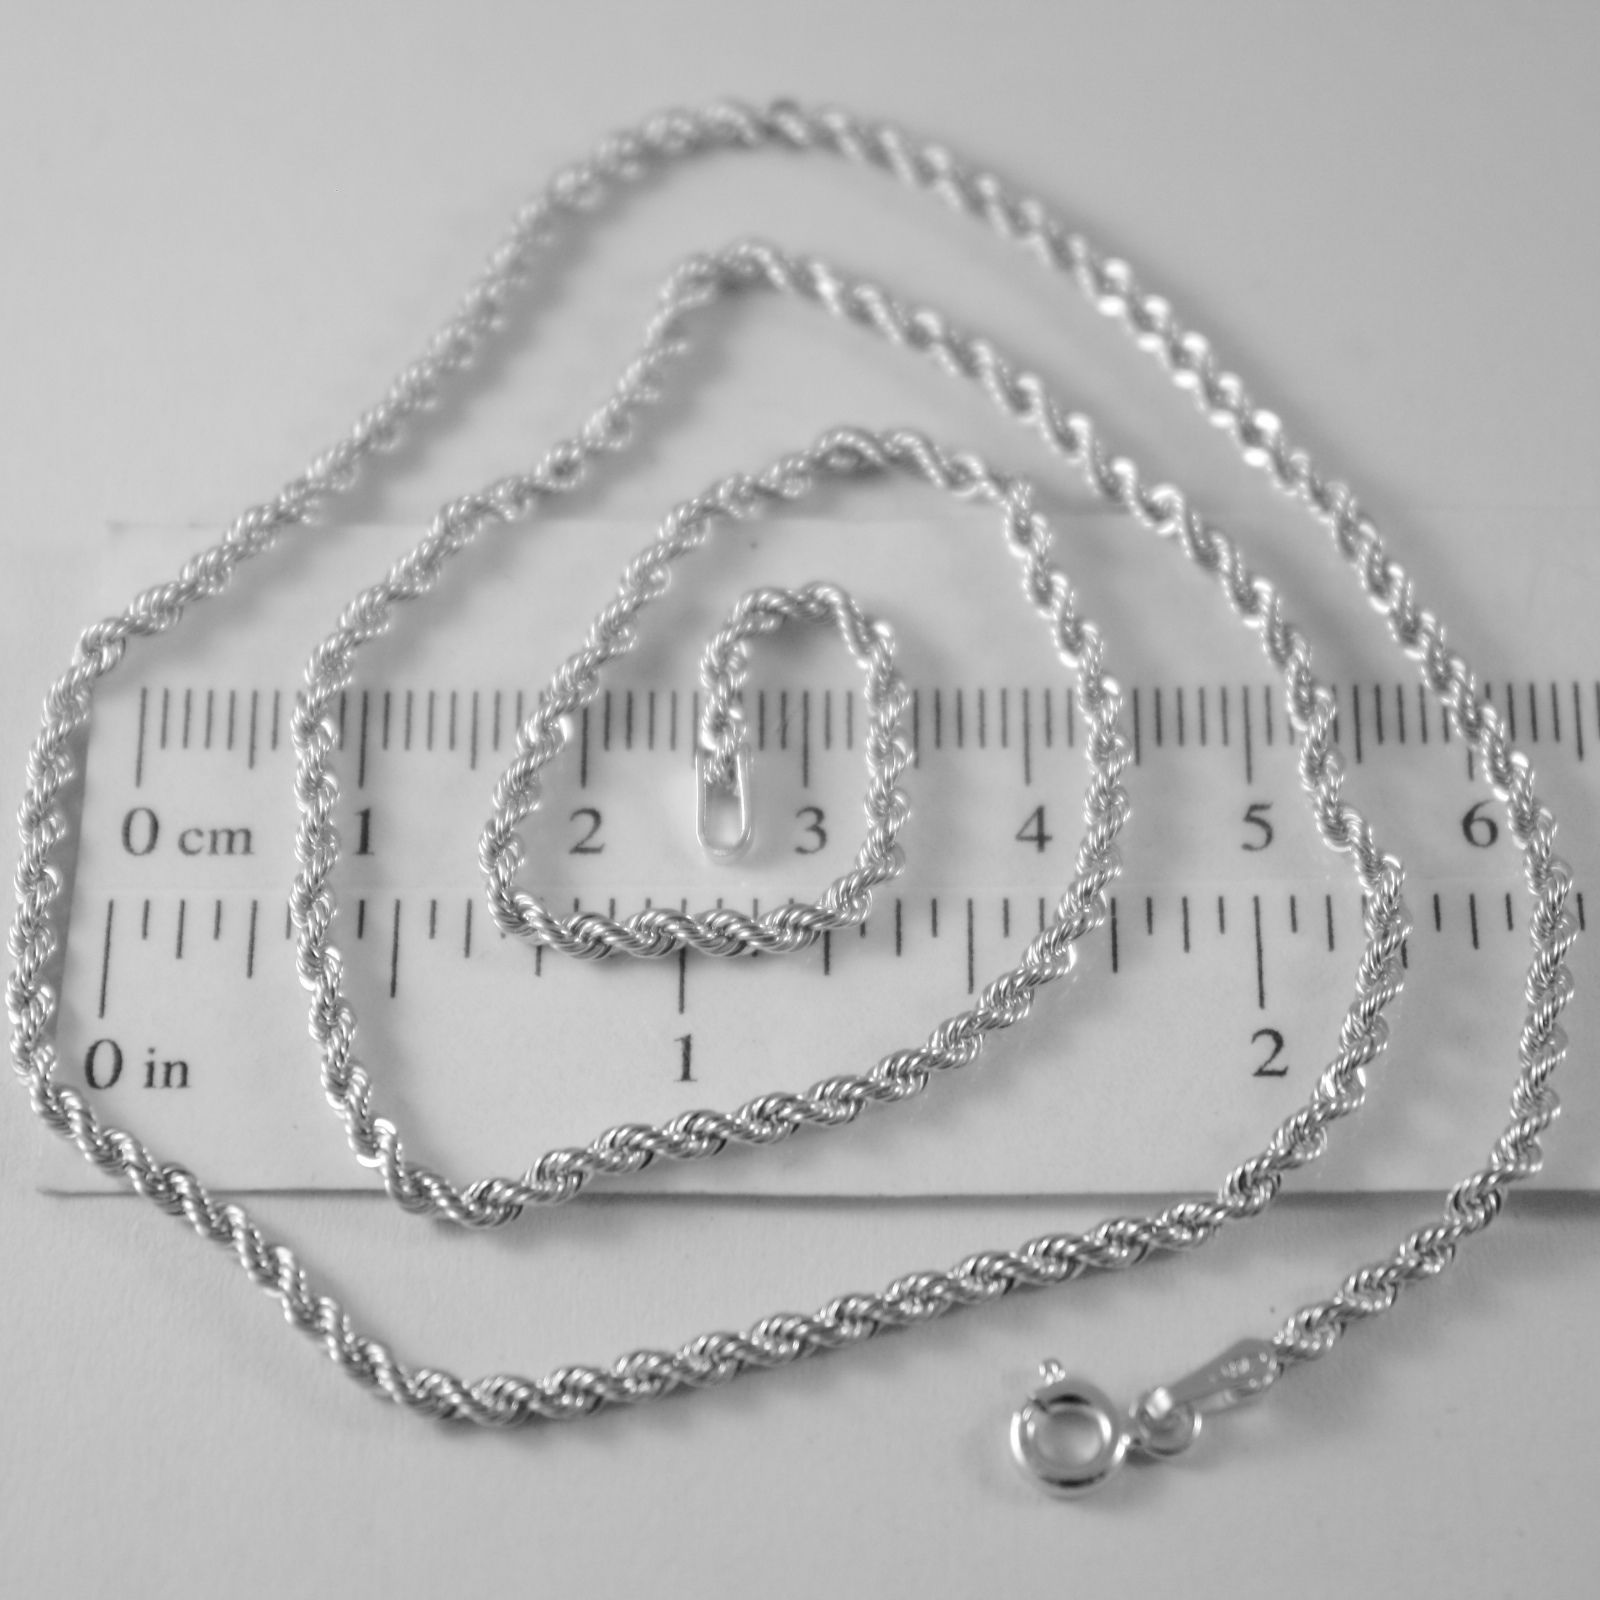 Braided Rope Chain In White Gold 750 18k, 40 45 50 60 cm, thickness 2.5 MM